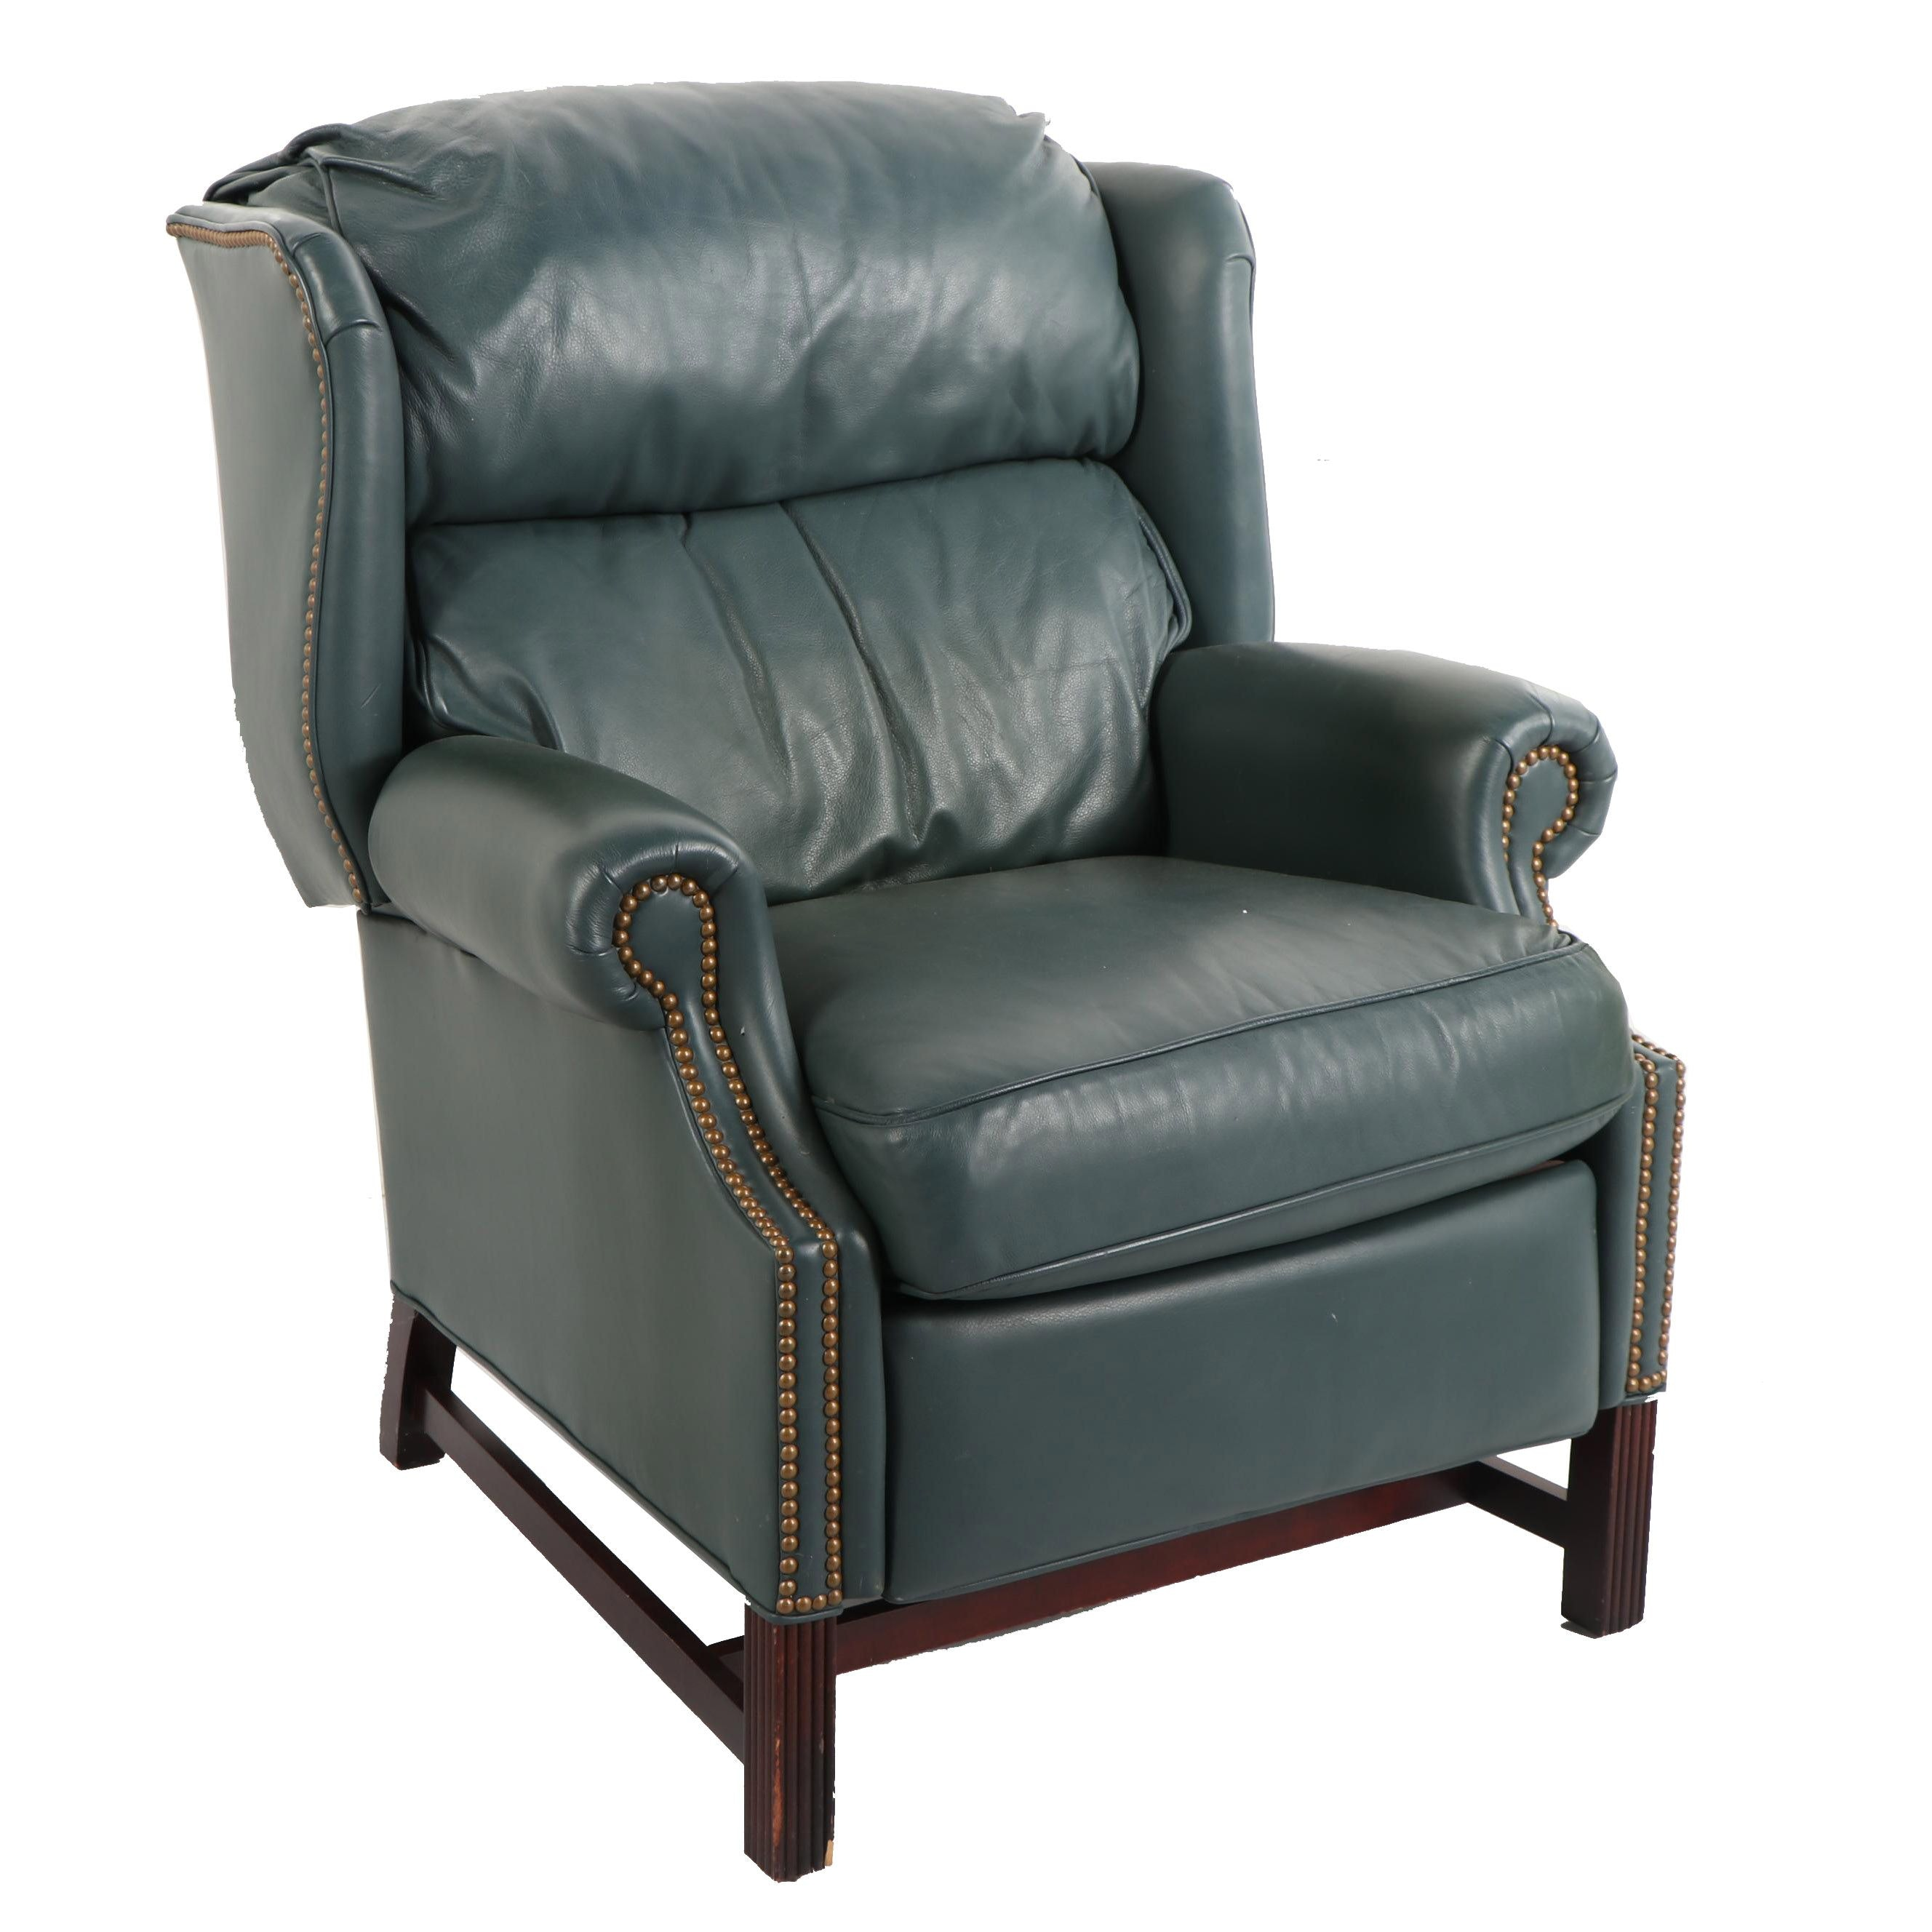 Federal Style Faux Leather Wingback Recliner, Late 20th Century